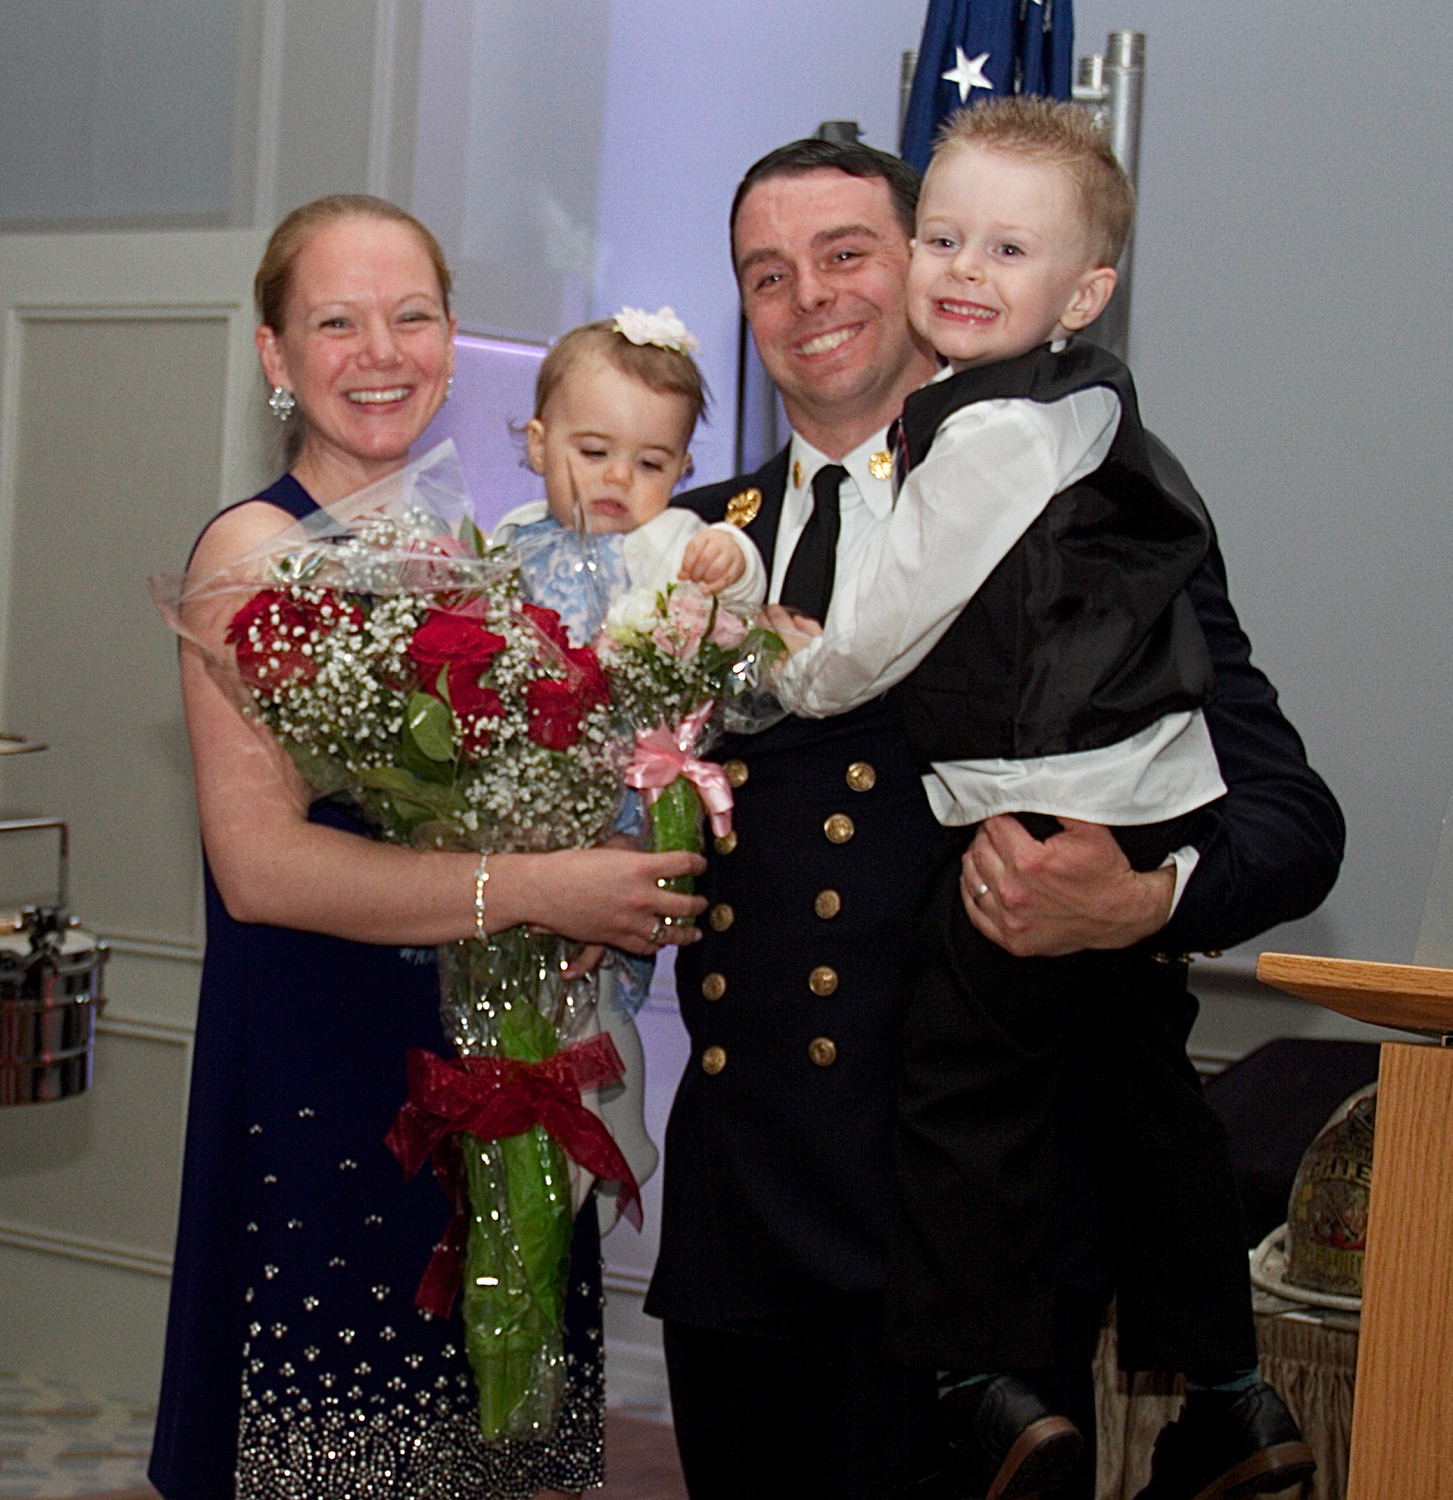 Chief Kevin Barry and his wife Erin, and children Liam, 4, and Cassidy, 1.